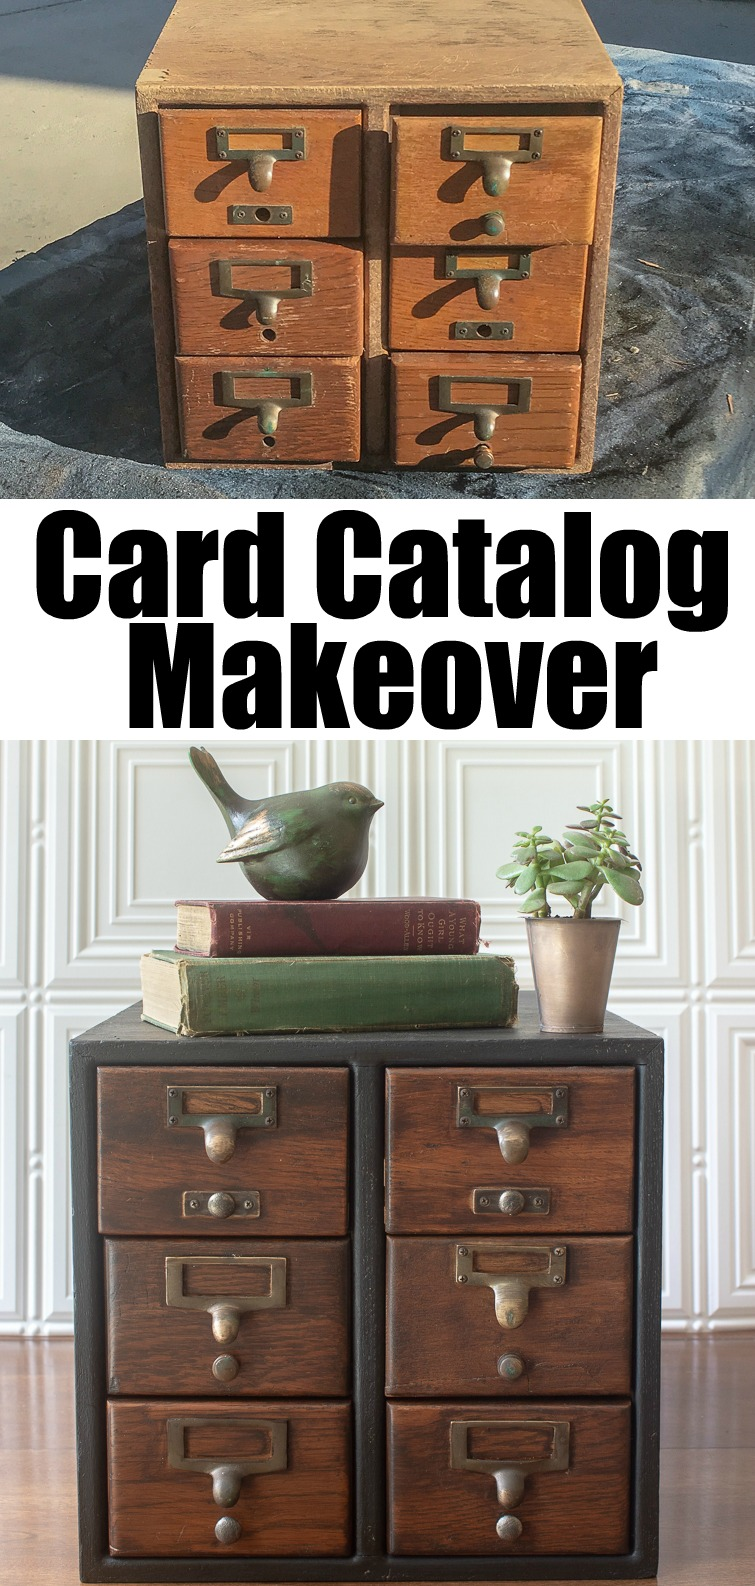 before and after photos of a vintage card catalog makeover